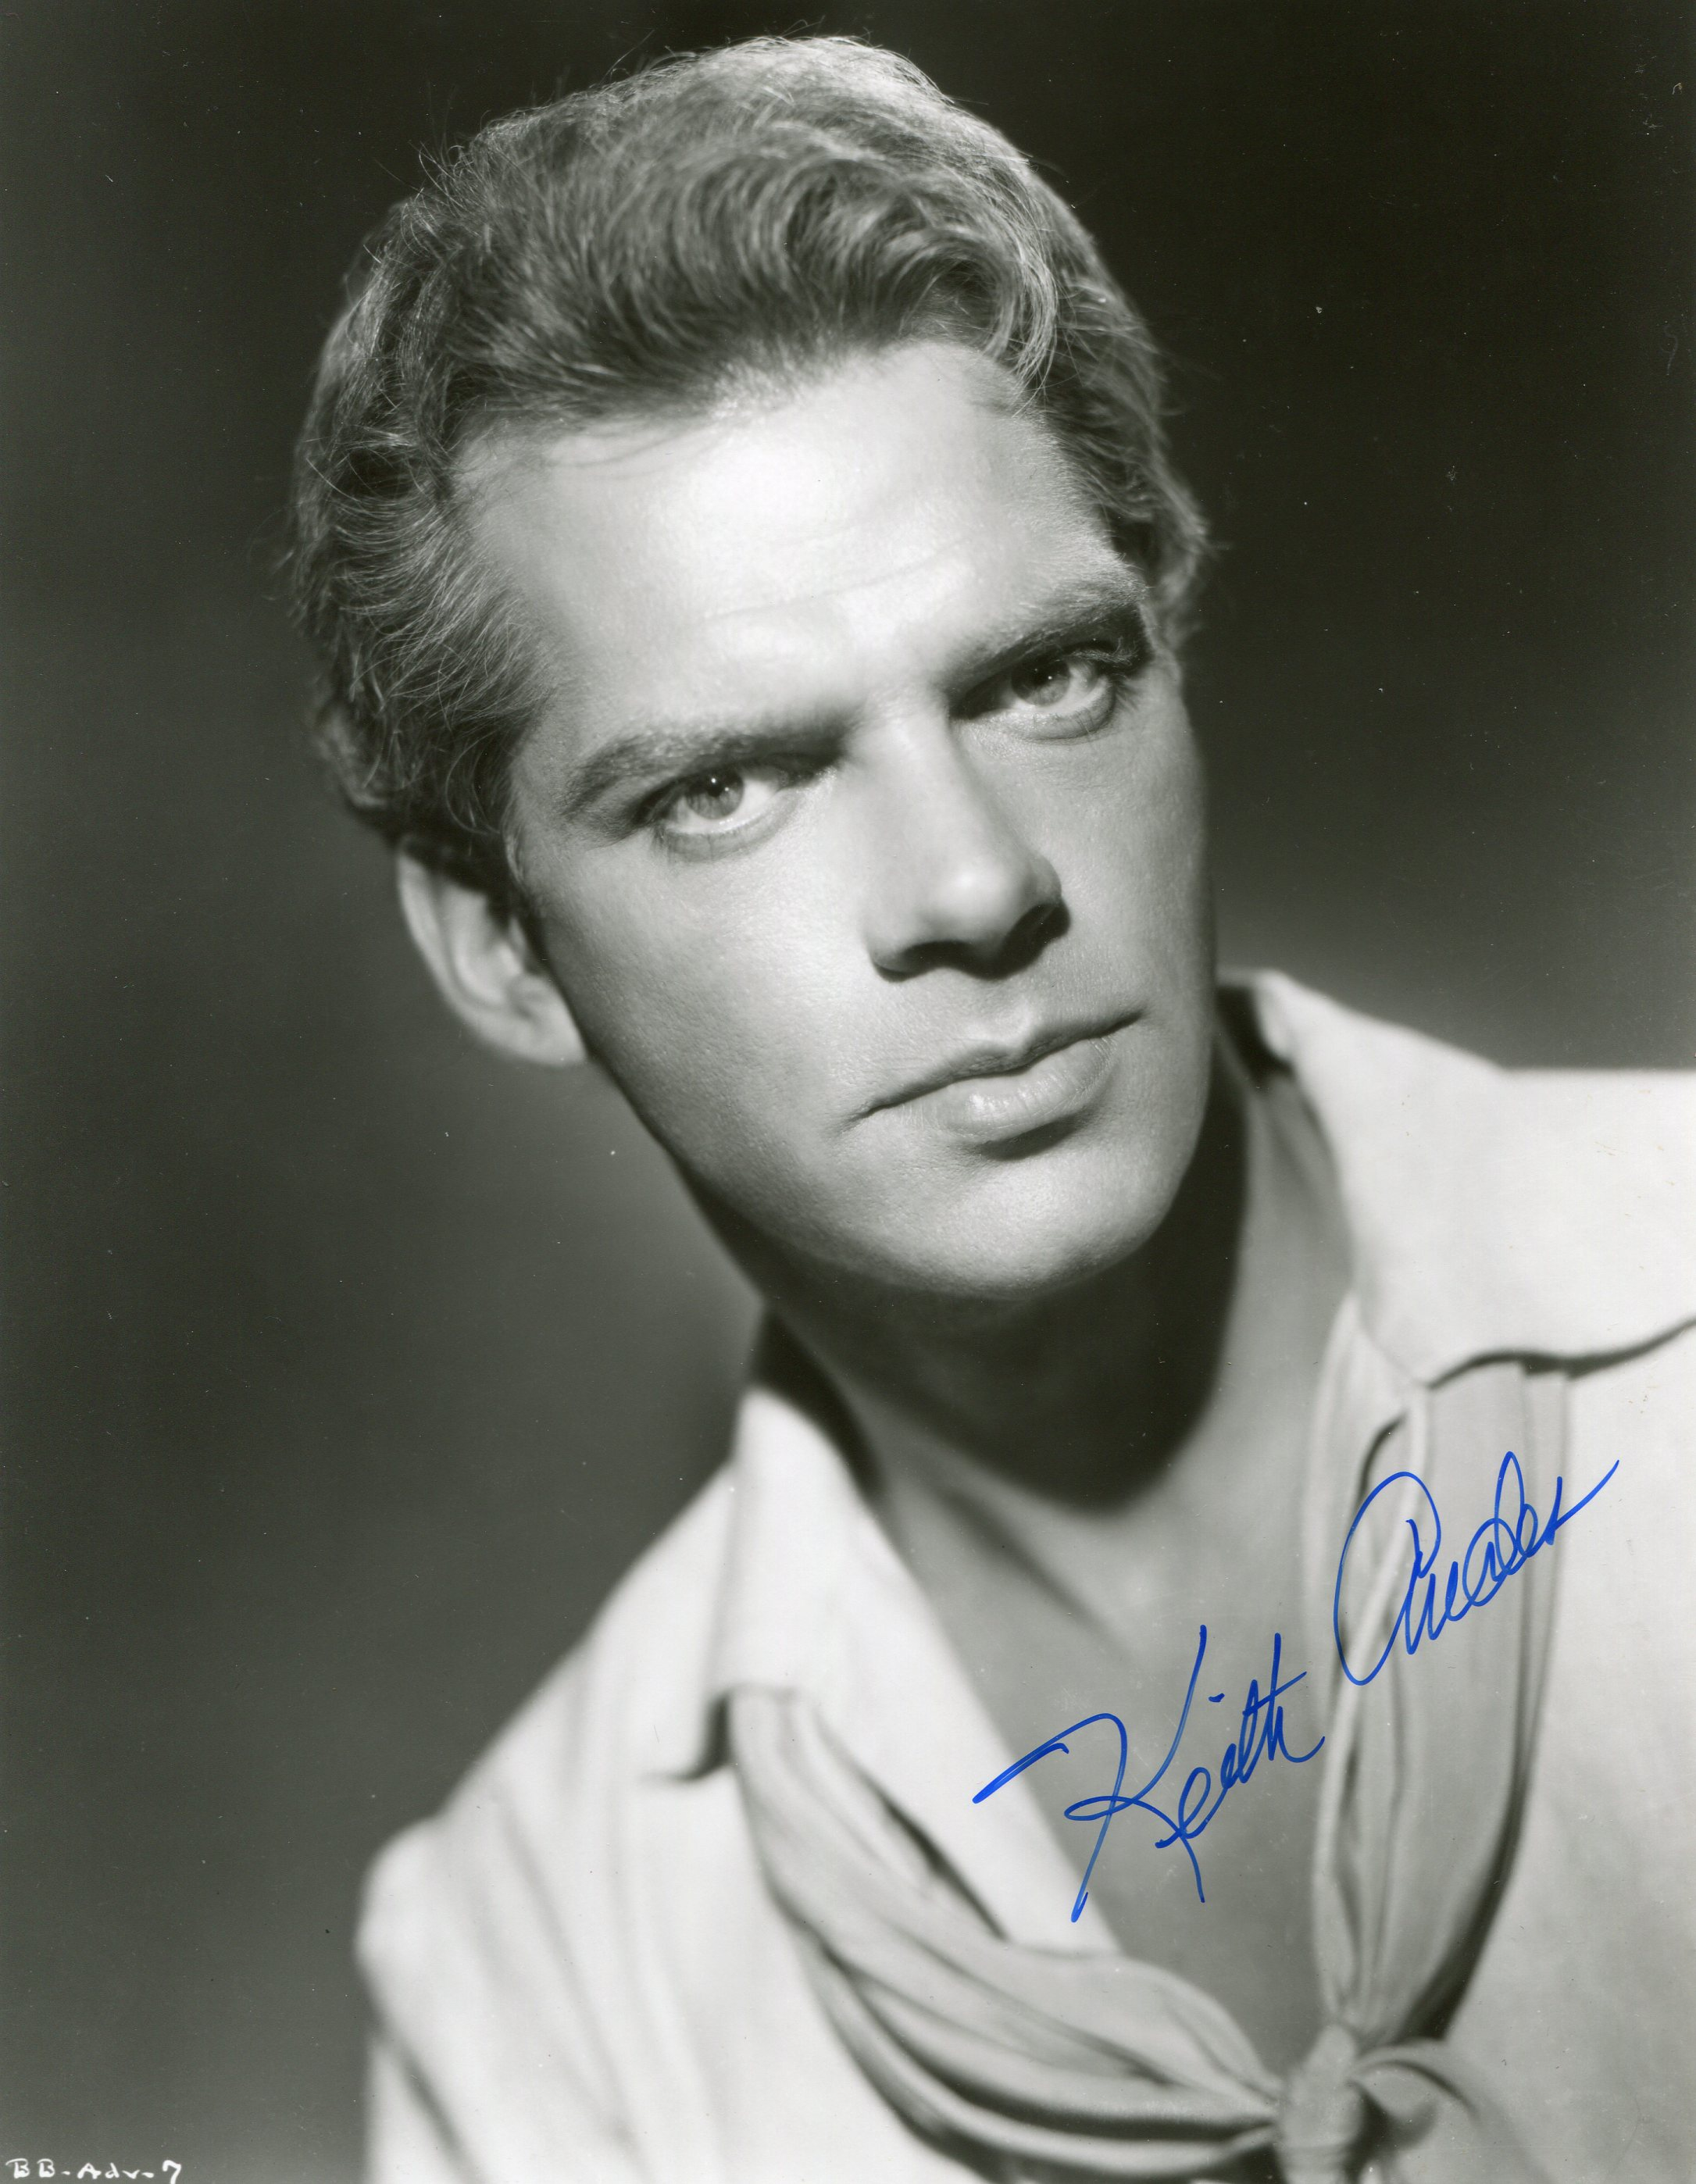 Keith Andes